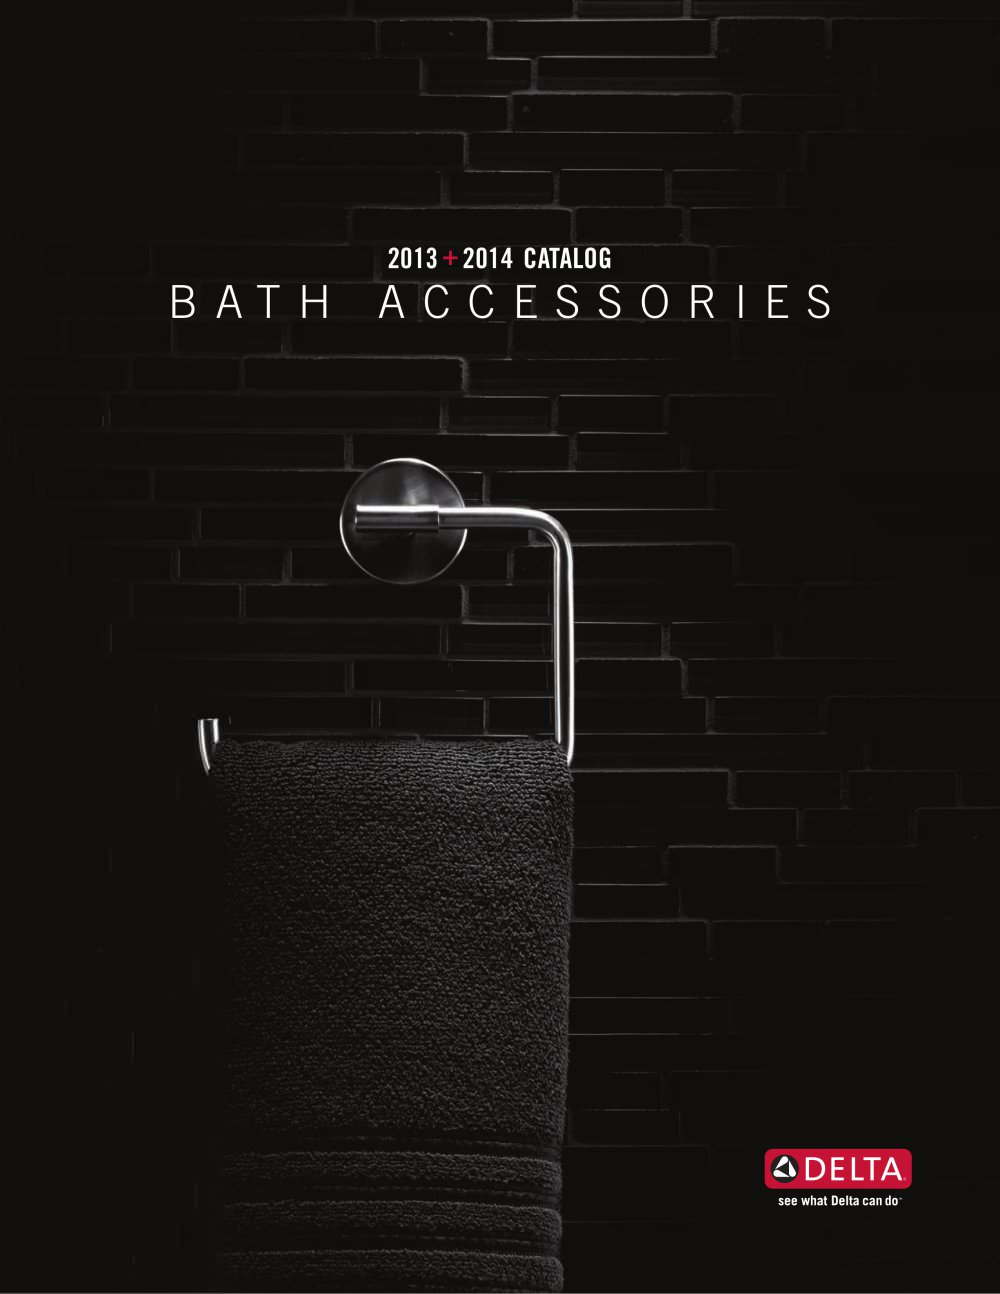 2013 2014 bath accessories catalog dl 1811 1 48 pages